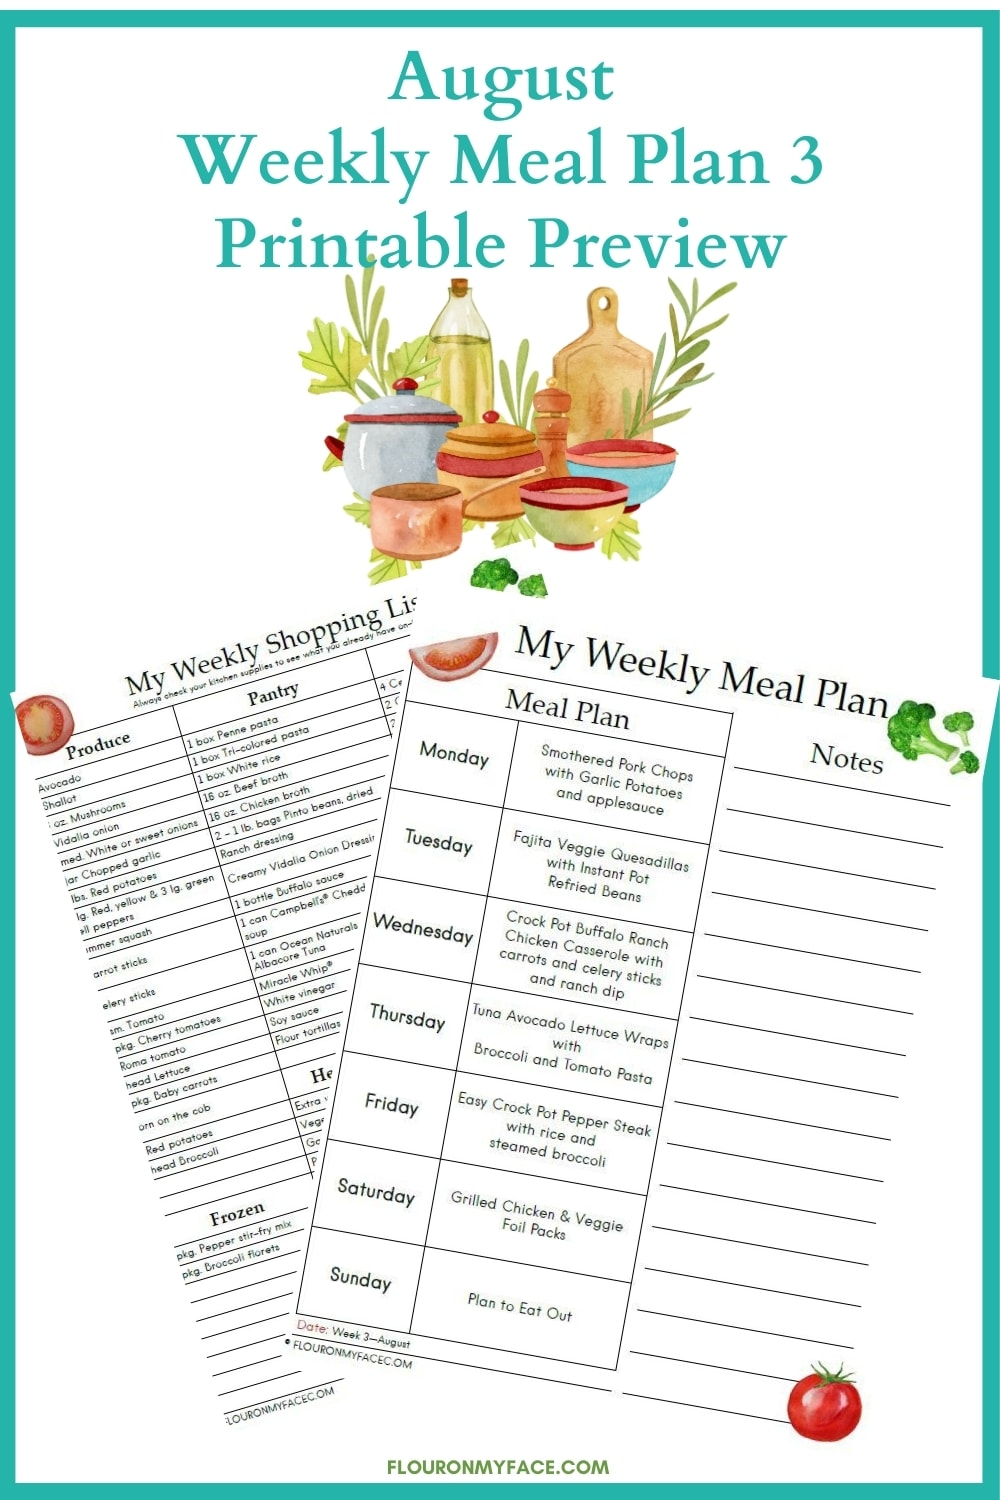 Meal Plan Printable Preview